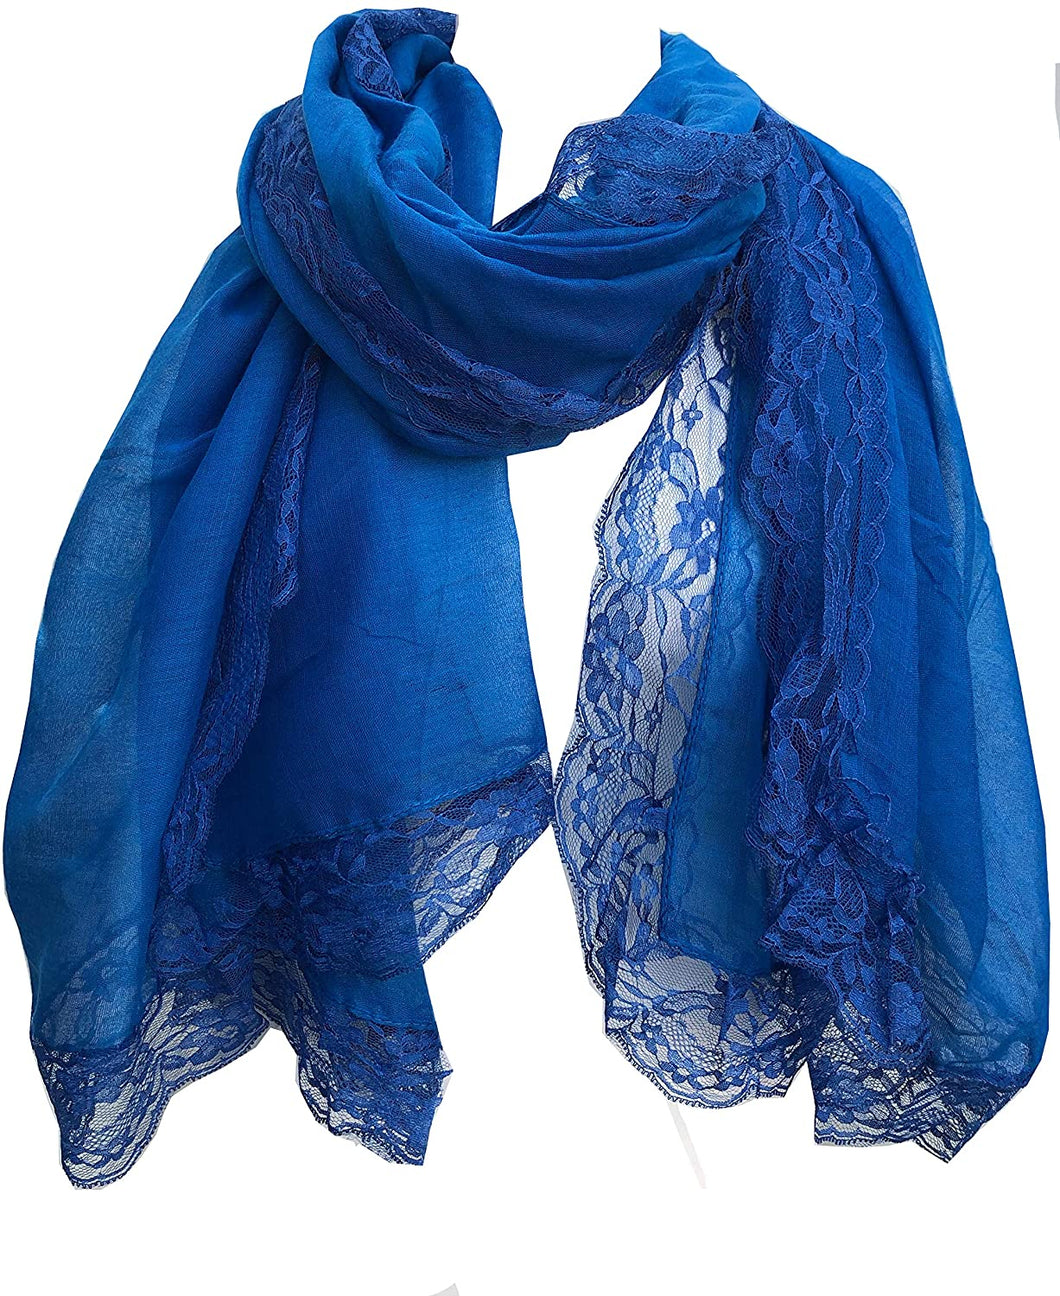 Pamper Yourself Now Royal Blue Plain Long Soft Scarf with lace Trim